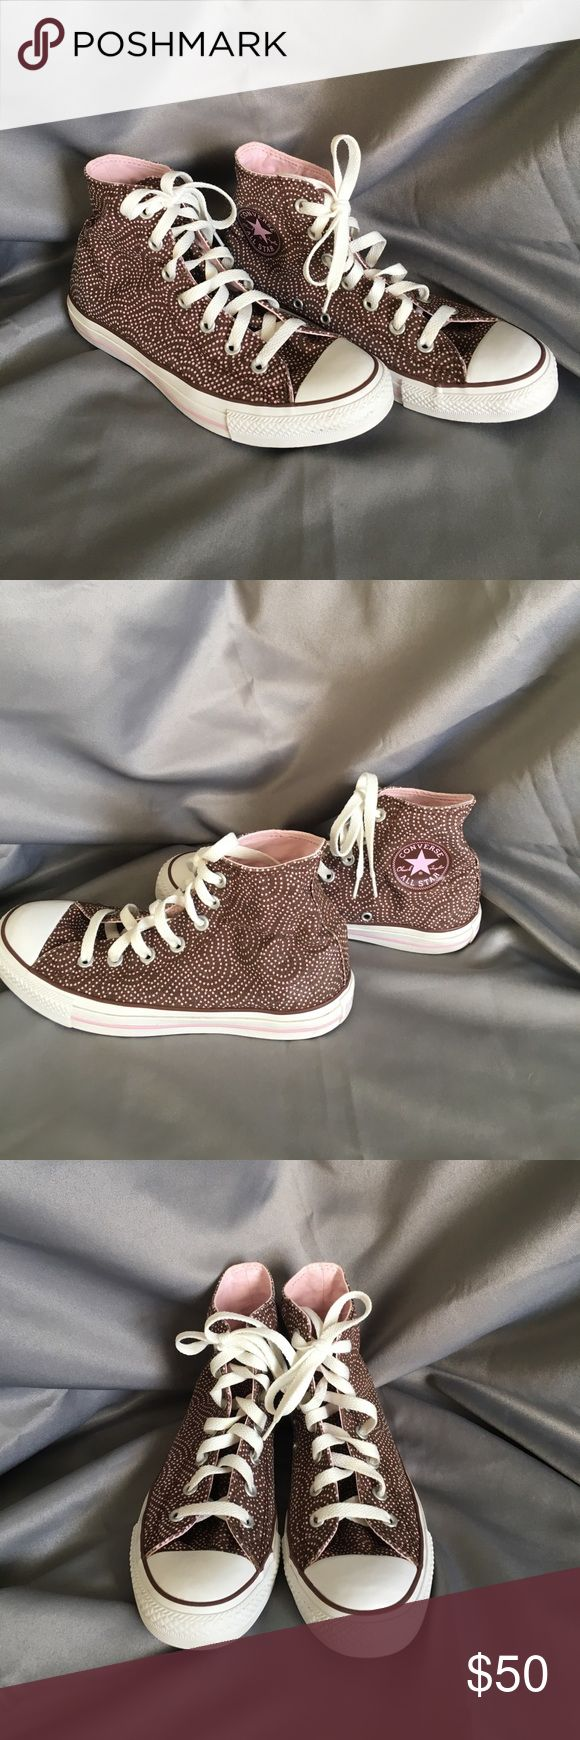 Converse Hightops Brown w/Pink 💕 Swirl Polka Dots Converse Hightops Brown w/Pink Heart Swirl Polka Dots. Gently used. Size is a men's 6 or women's 8. Sticker marks on the inside soles. See pic. Converse Shoes Sneakers